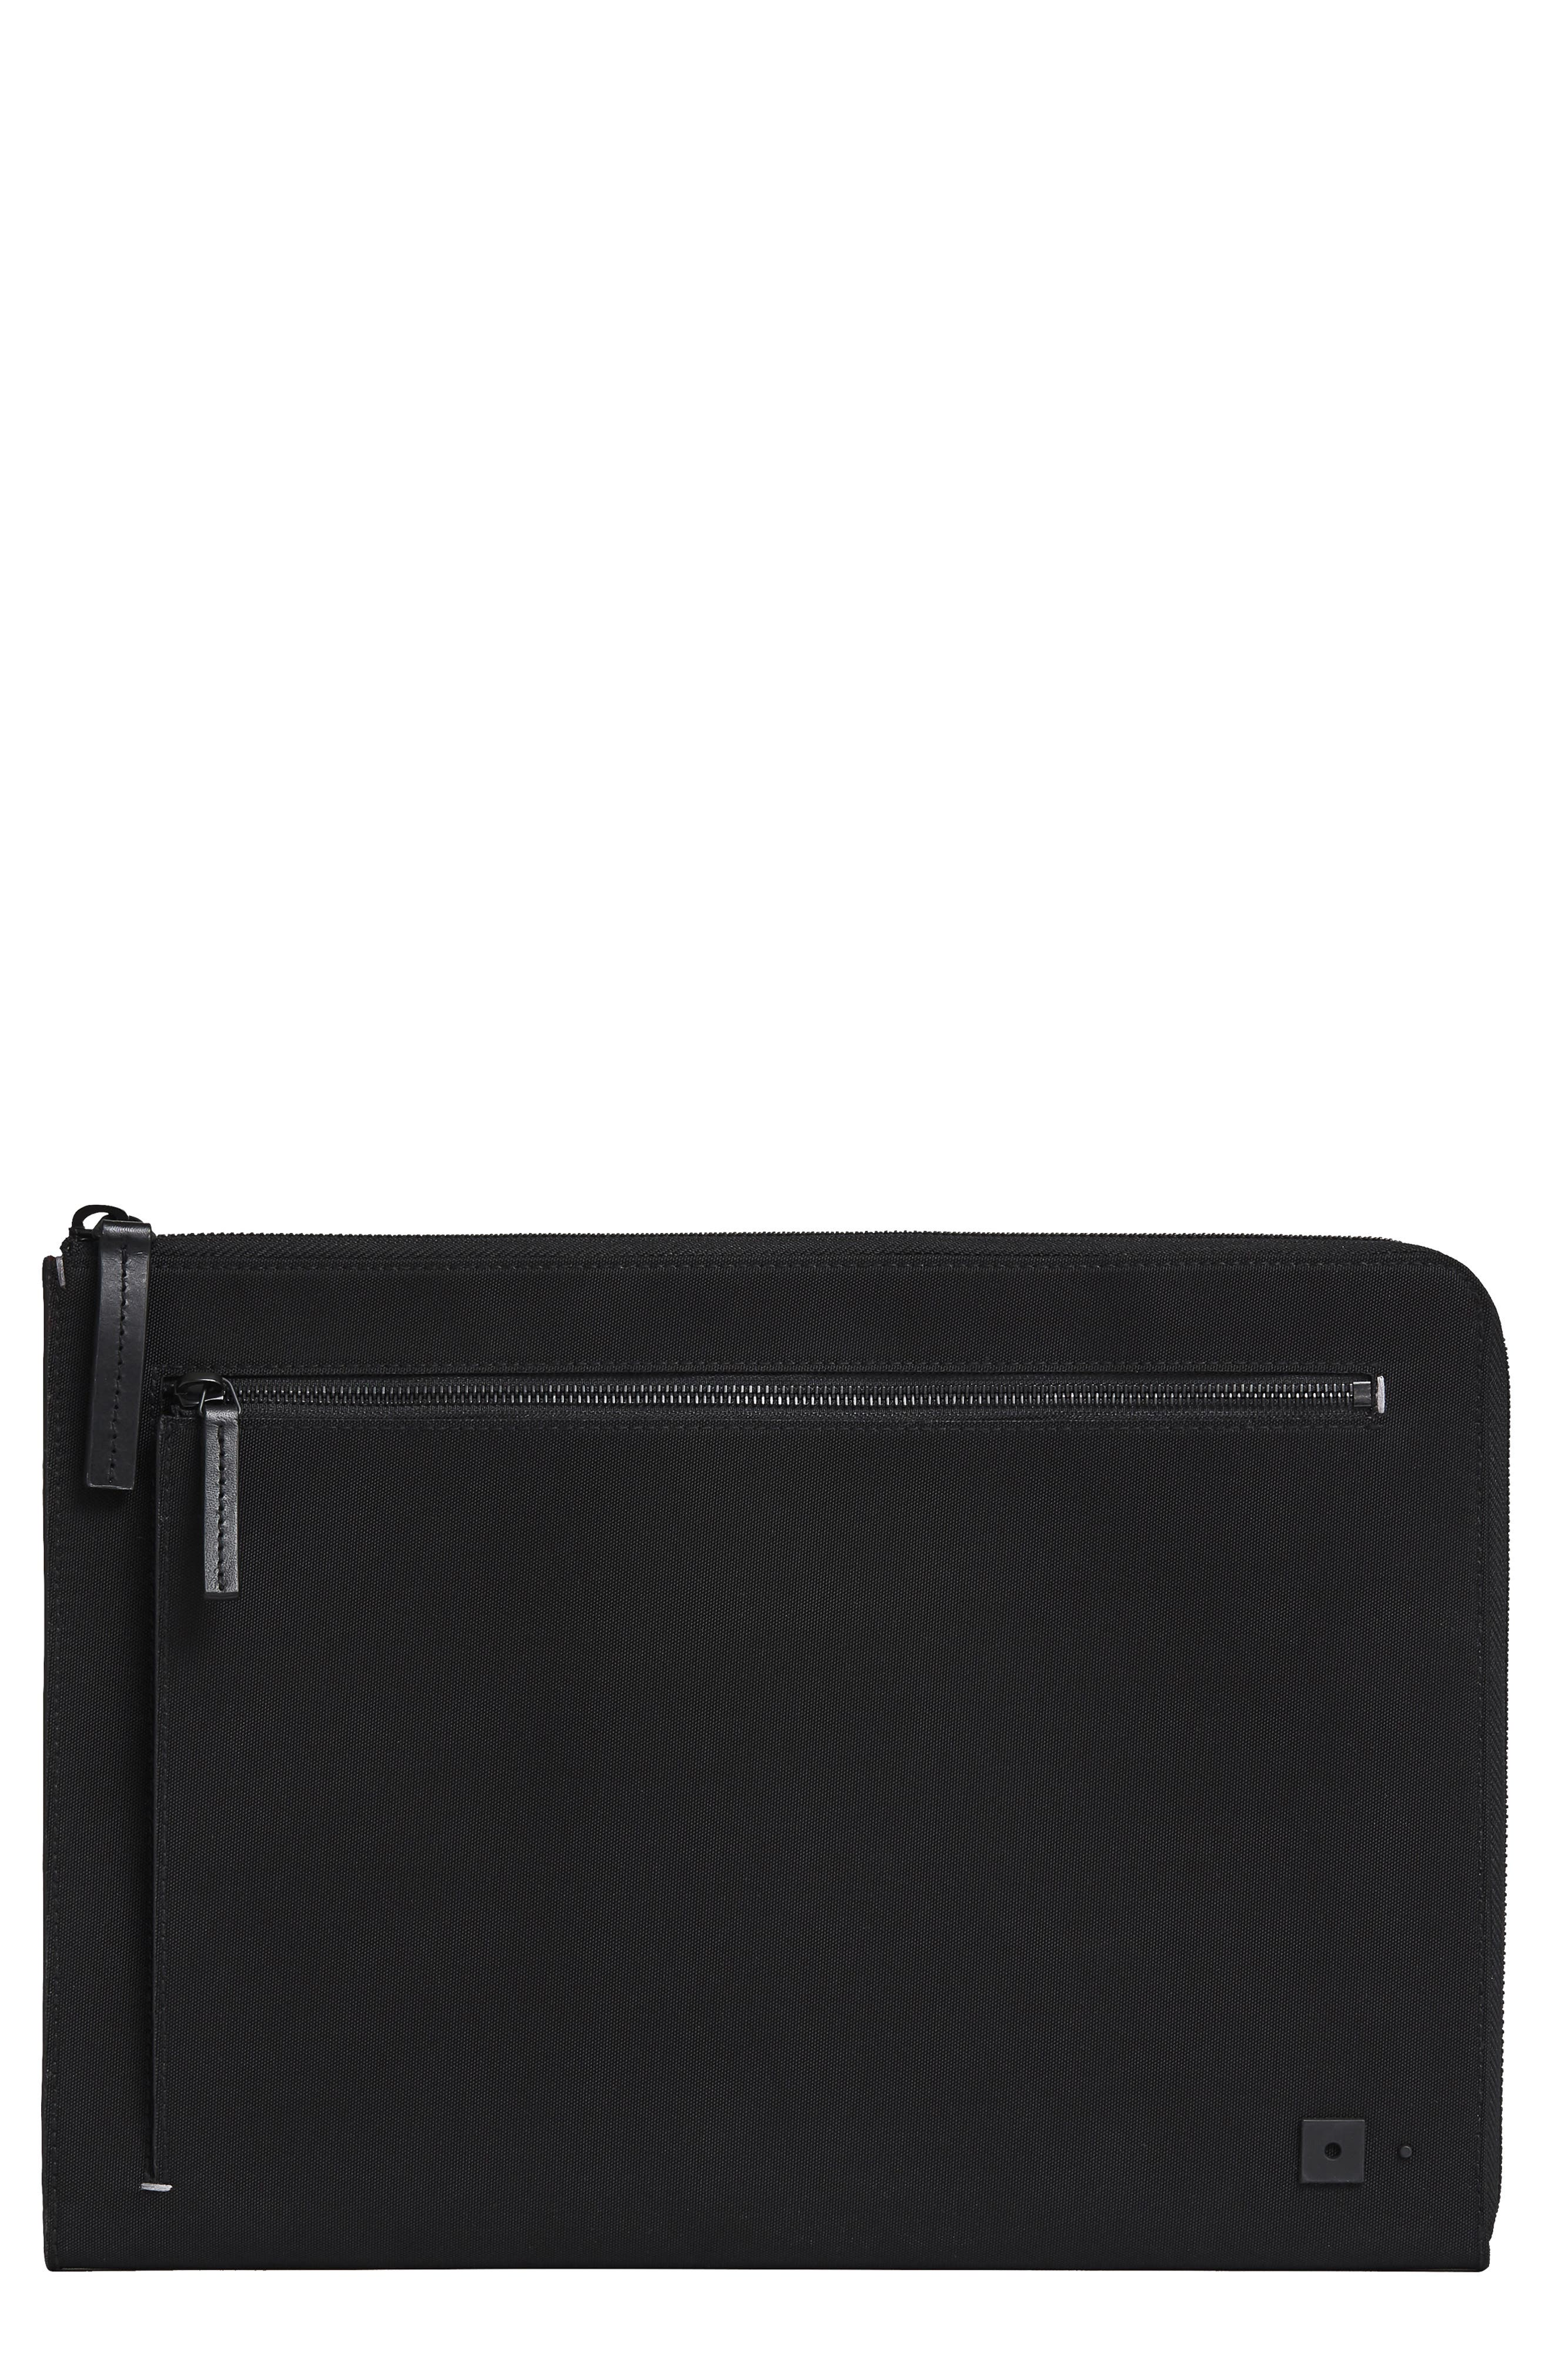 Portfolio Case,                             Main thumbnail 1, color,                             BLACK NYLON/ BLACK LEATHER